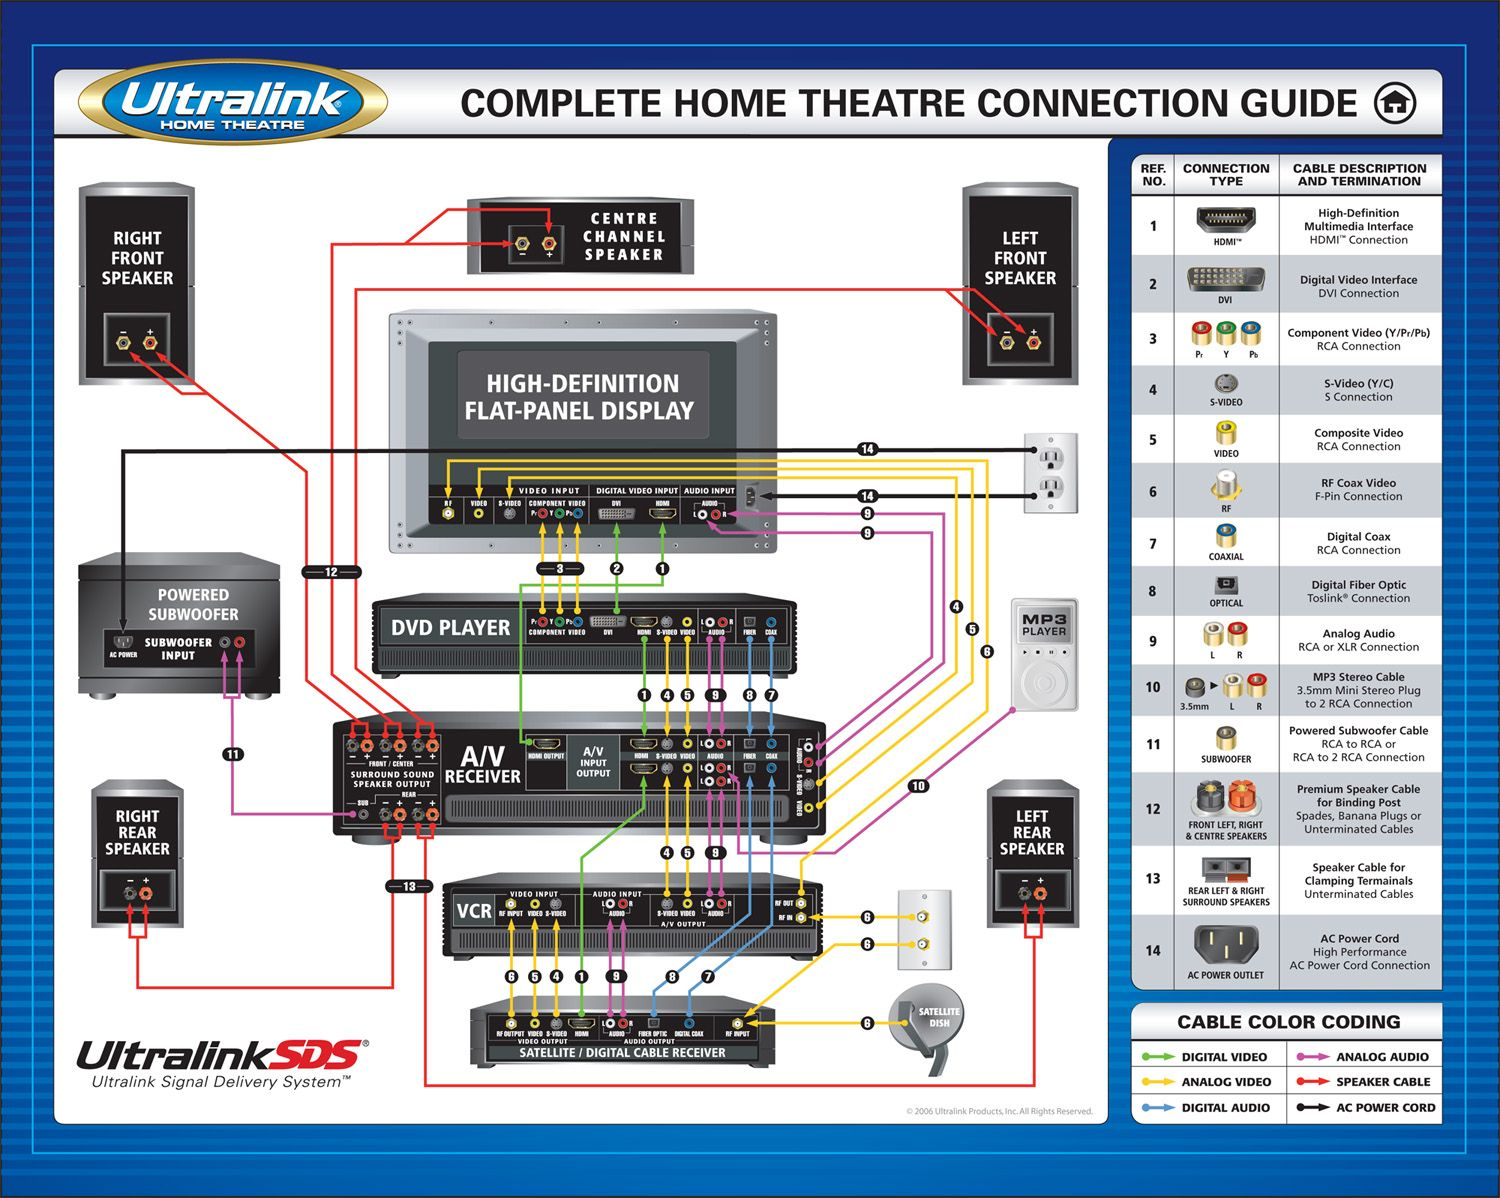 direct tv multi room wiring diagram with 144959681725971708 on Sky Q Wiring Diagram moreover Tivo Controller Diagram as well Hr24 500 Wiring Diagram besides Palomino gif additionally 144959681725971708.